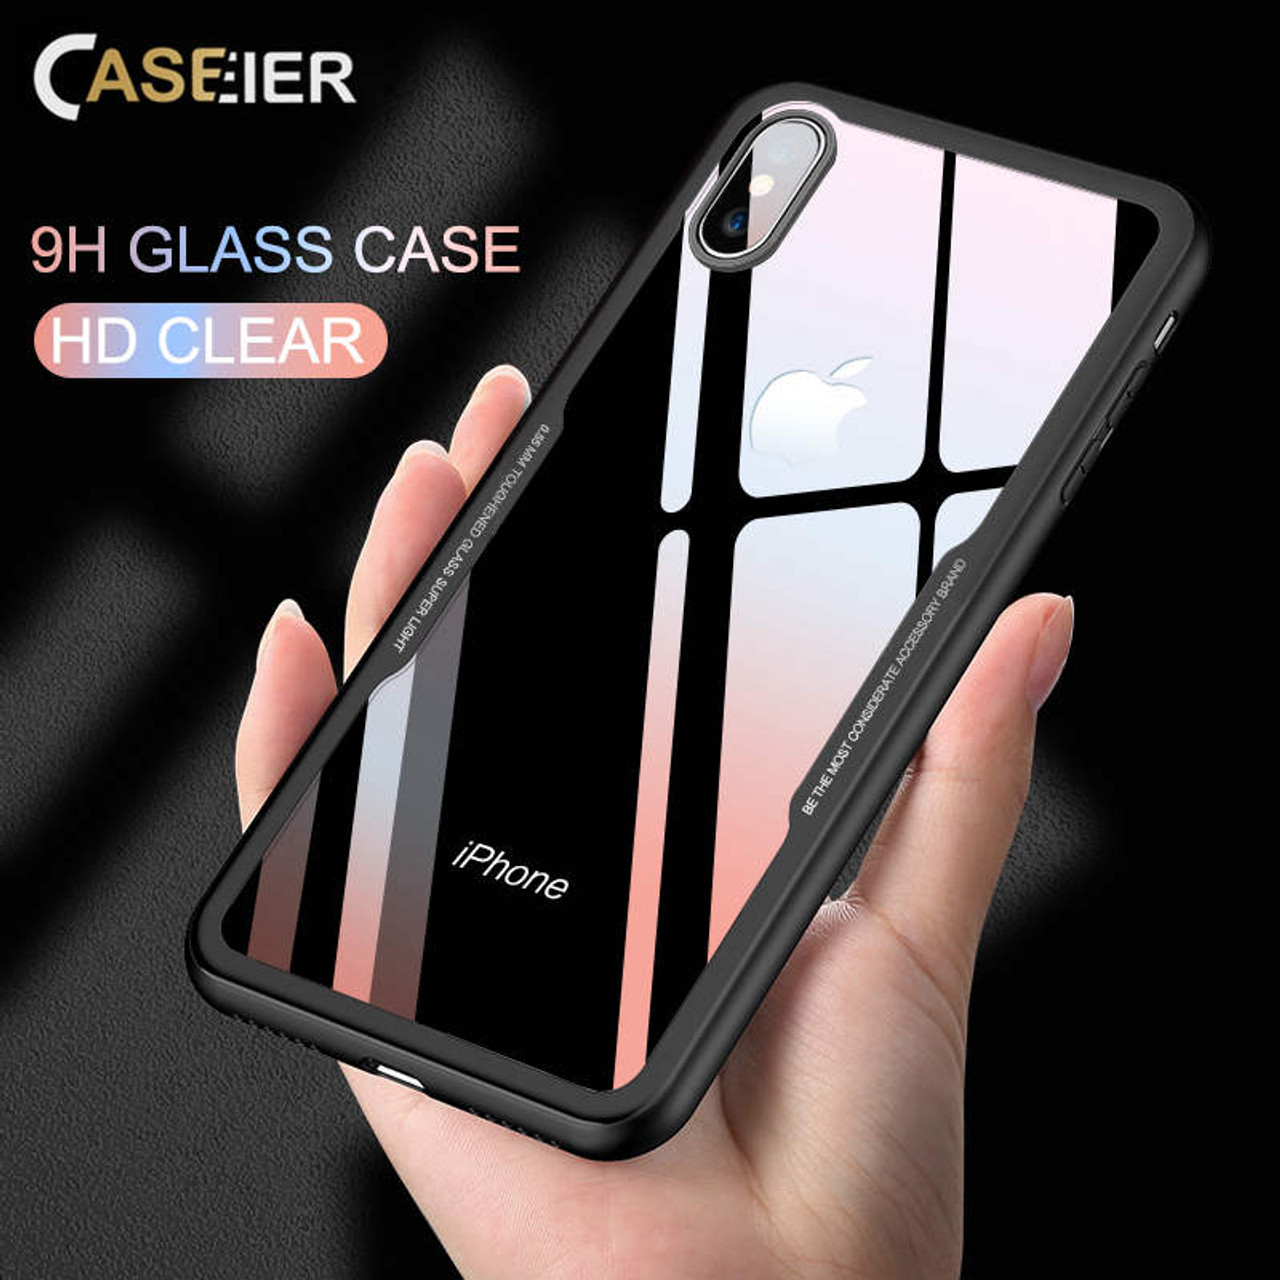 outlet store 195a0 73de0 CASEIER Tempered Glass Phone Case For iPhone 7 8 Cases 0.55MM Protective  Glass Cover For iPhone 6 6s Plus X Capinha Accessories